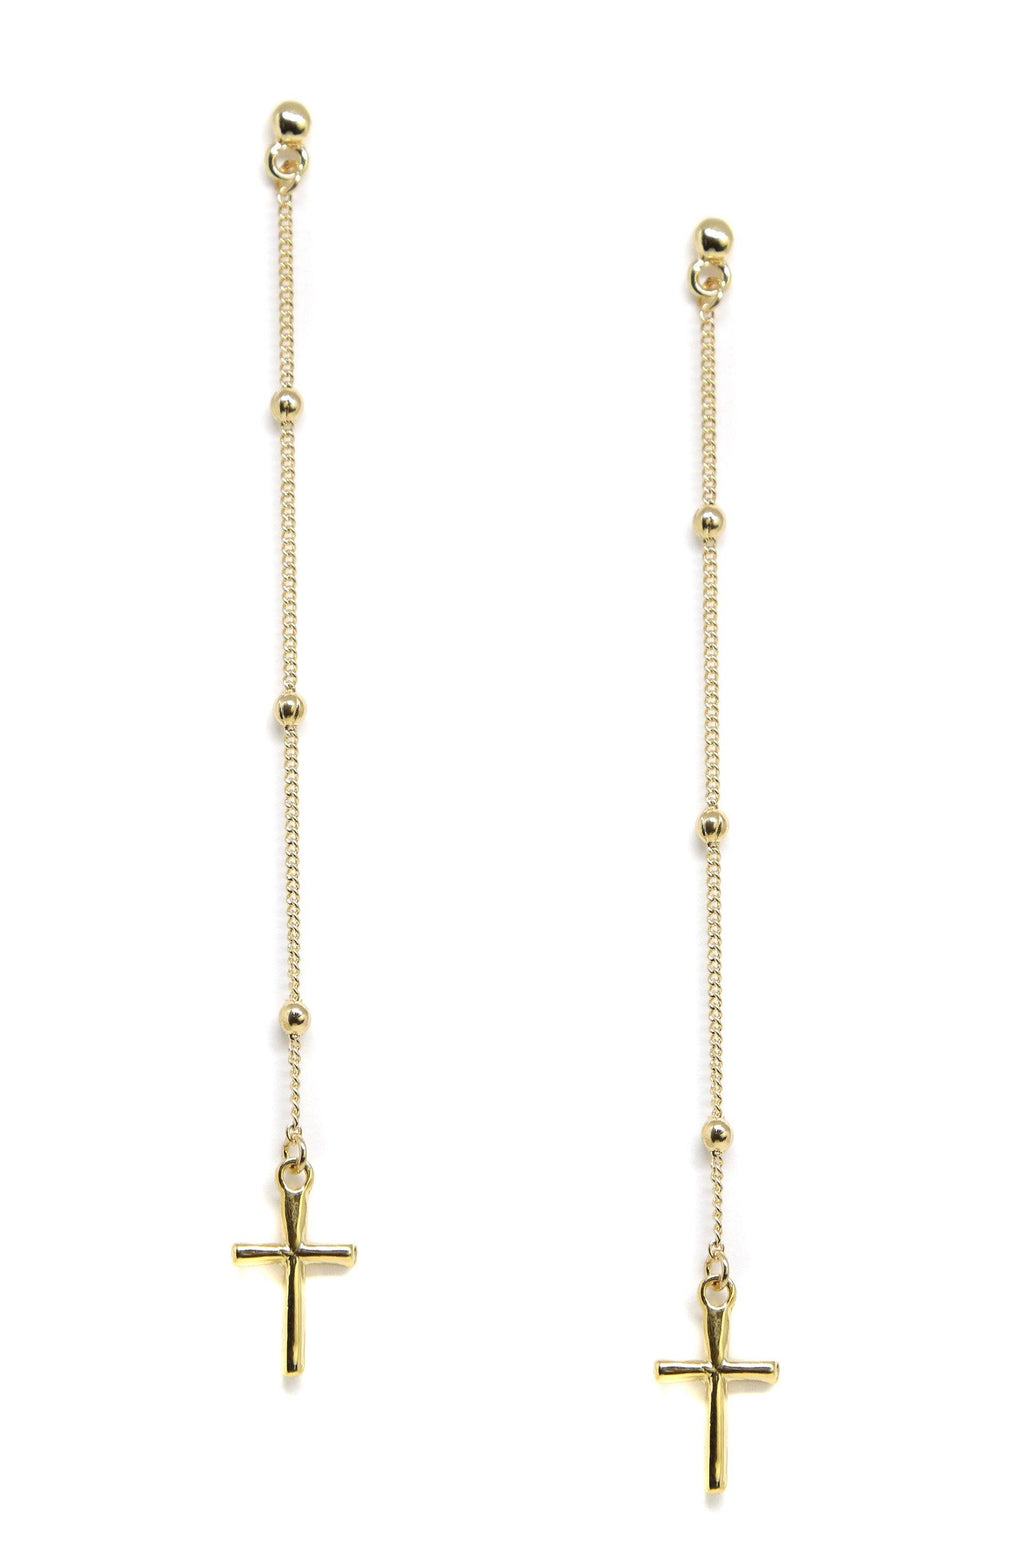 Chance and Faith 18k Gold Plated Dainty Cross Earrings